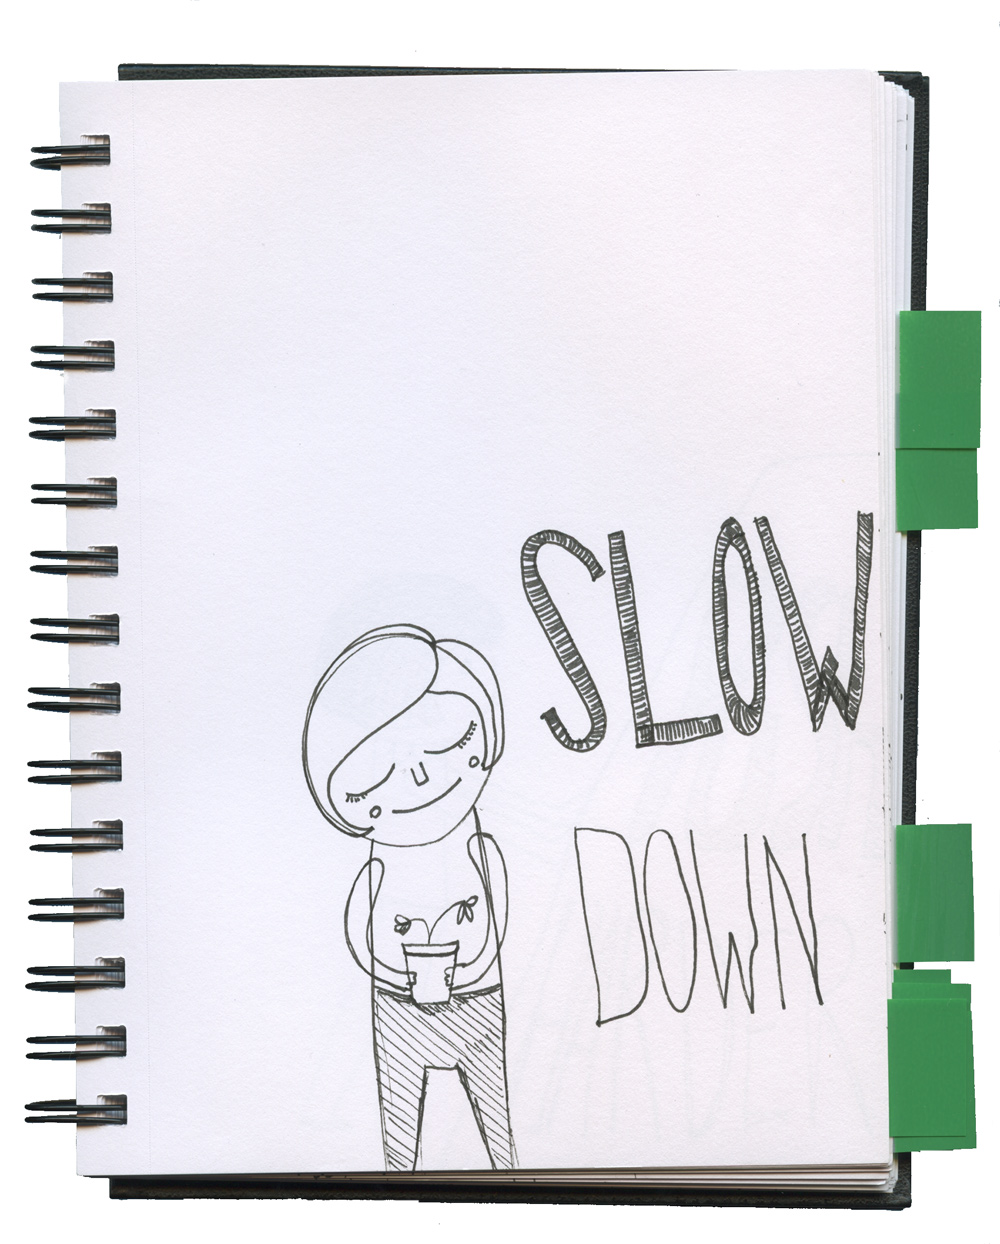 tbennett-sb-slow-down